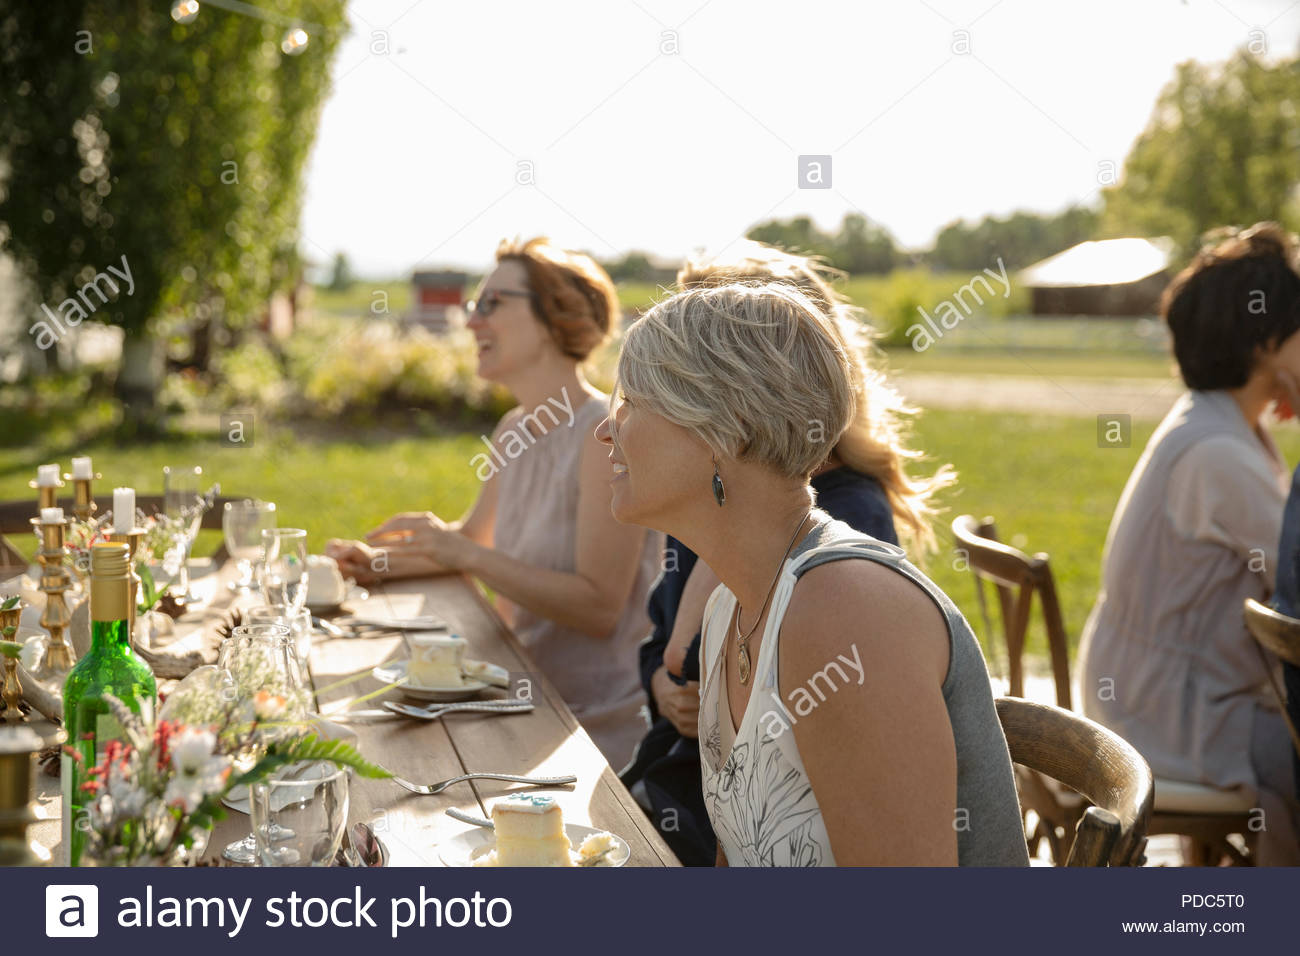 Smiling woman eating cake at garden party table - Stock Image